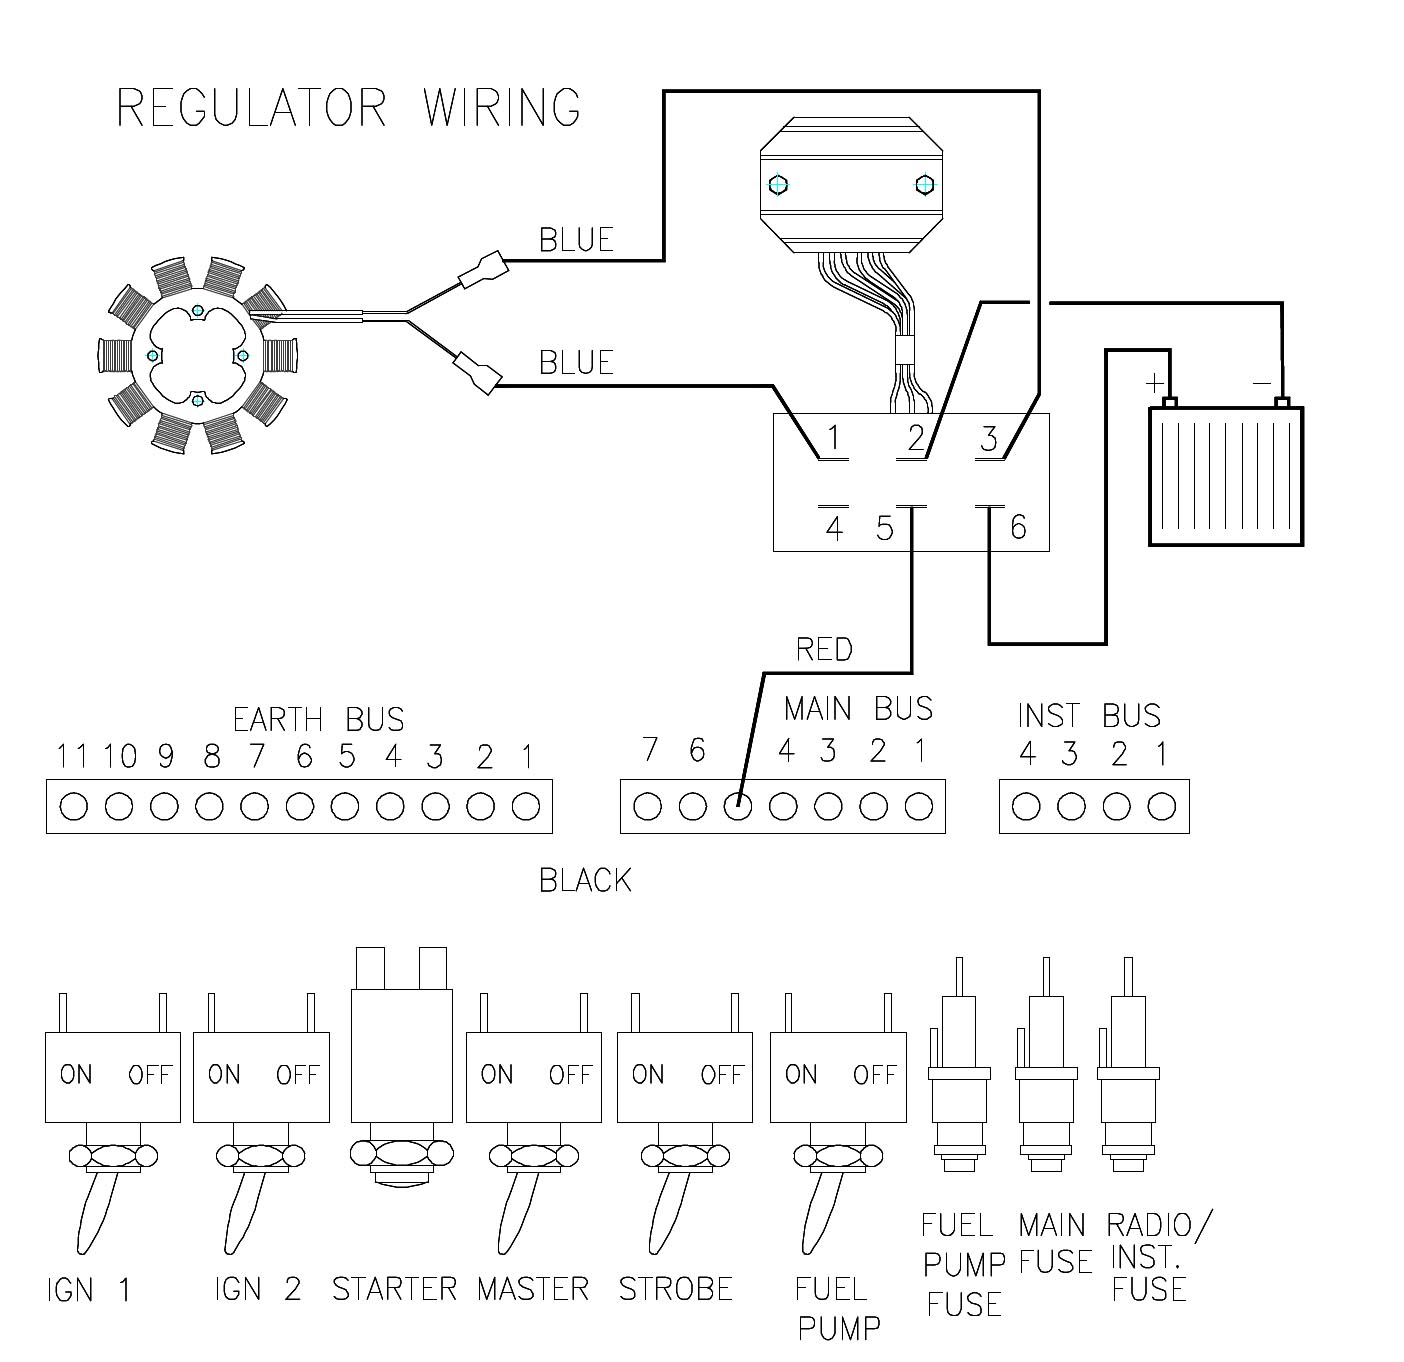 Jabiru_3300_Alternator_Wiring wiring diagram cessna 12 volt alternator readingrat net cessna 182 wiring diagram at soozxer.org